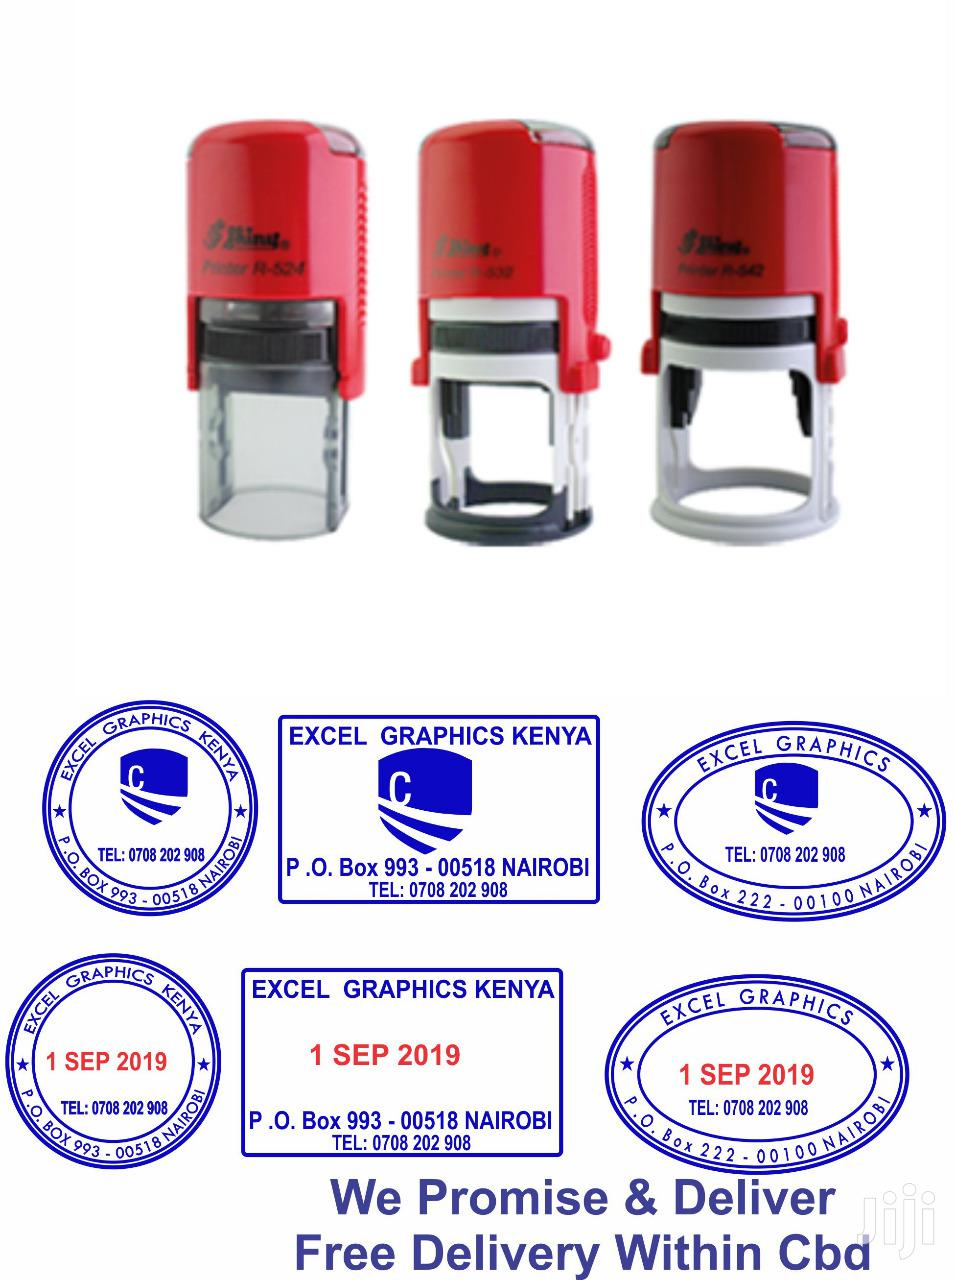 Rubber Stamps And Company Seal